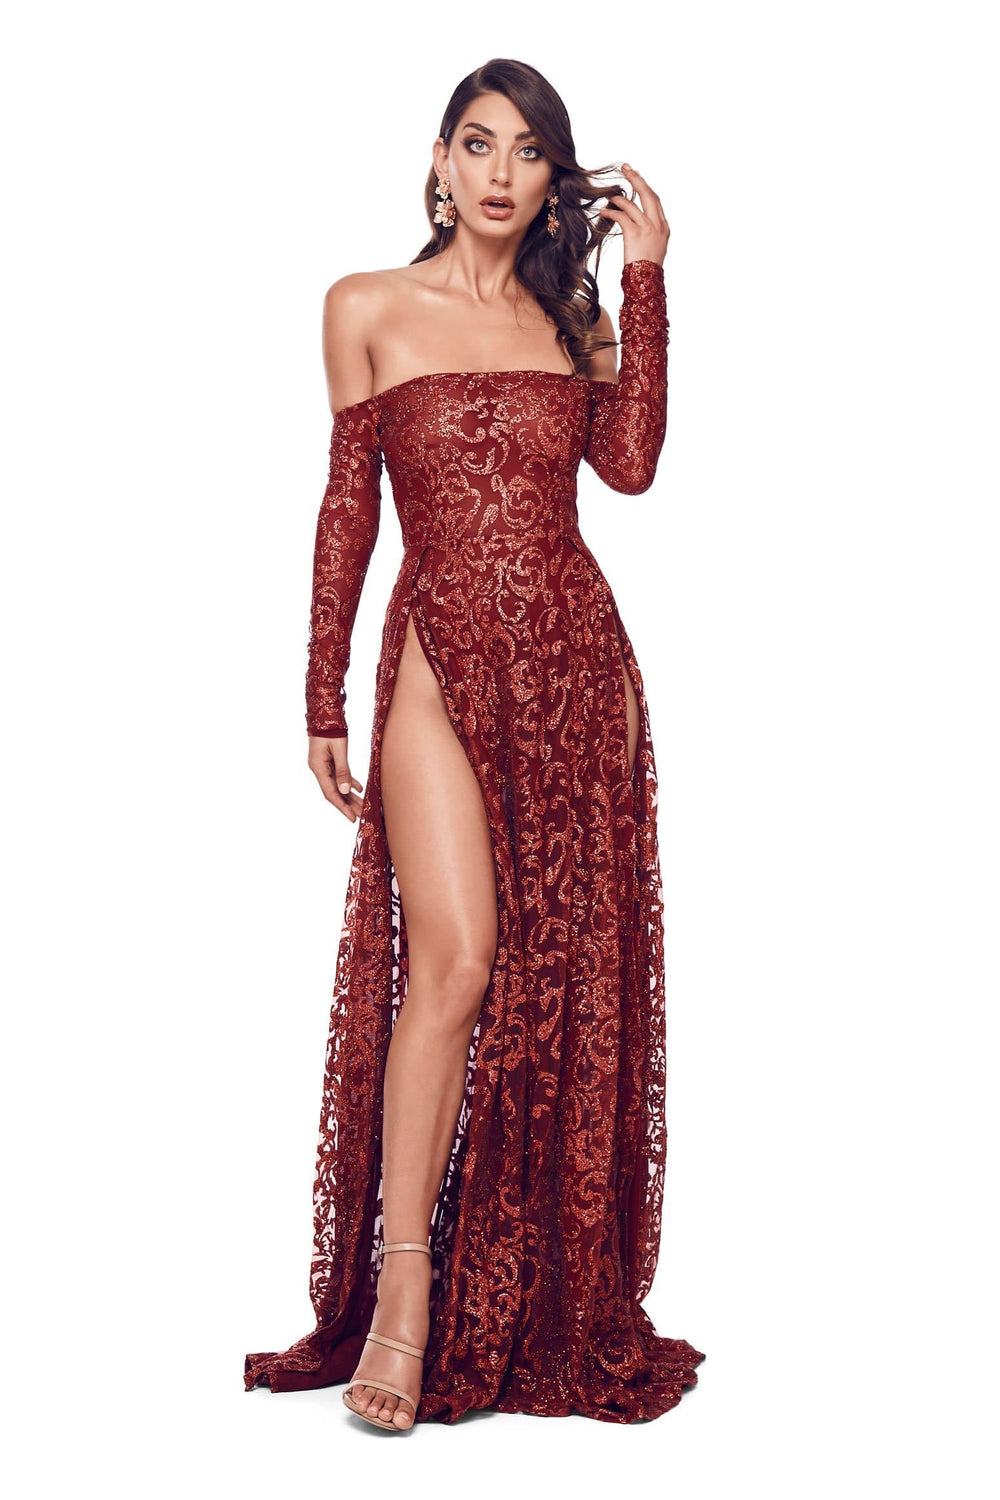 Flame - Wine Red Glitter Gown with Off-Shoulder Long Sleeves   Slit ... 30890aa8f